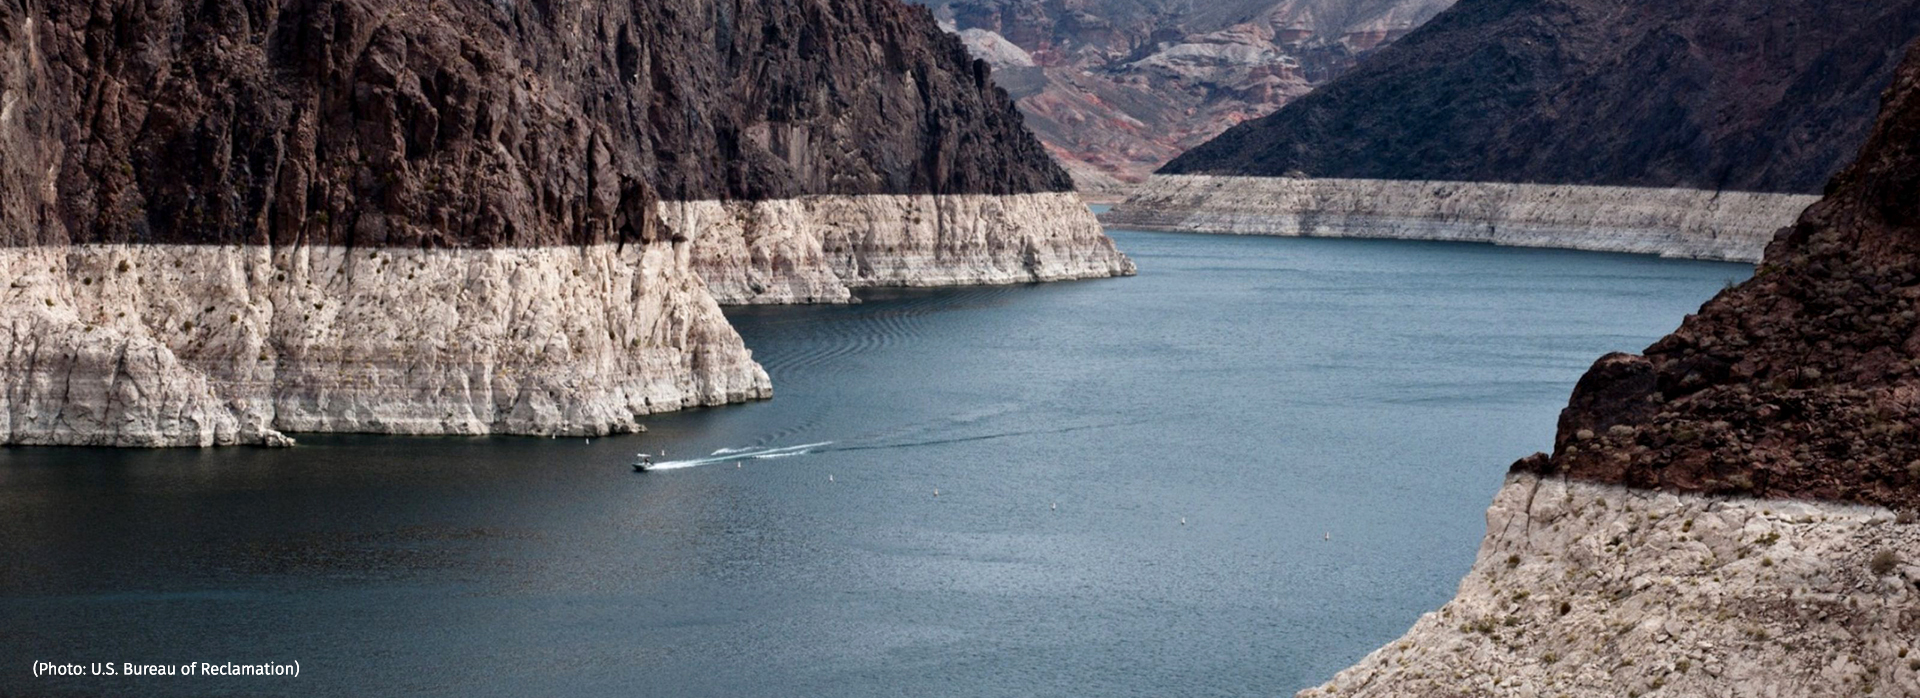 "Surface-water depletion in the Colorado River Basin has left this ""bathtub ring"" of mineral deposits on Lake Mead, but groundwater loss is invisible. (Photo: U.S. Bureau of Reclamation)"